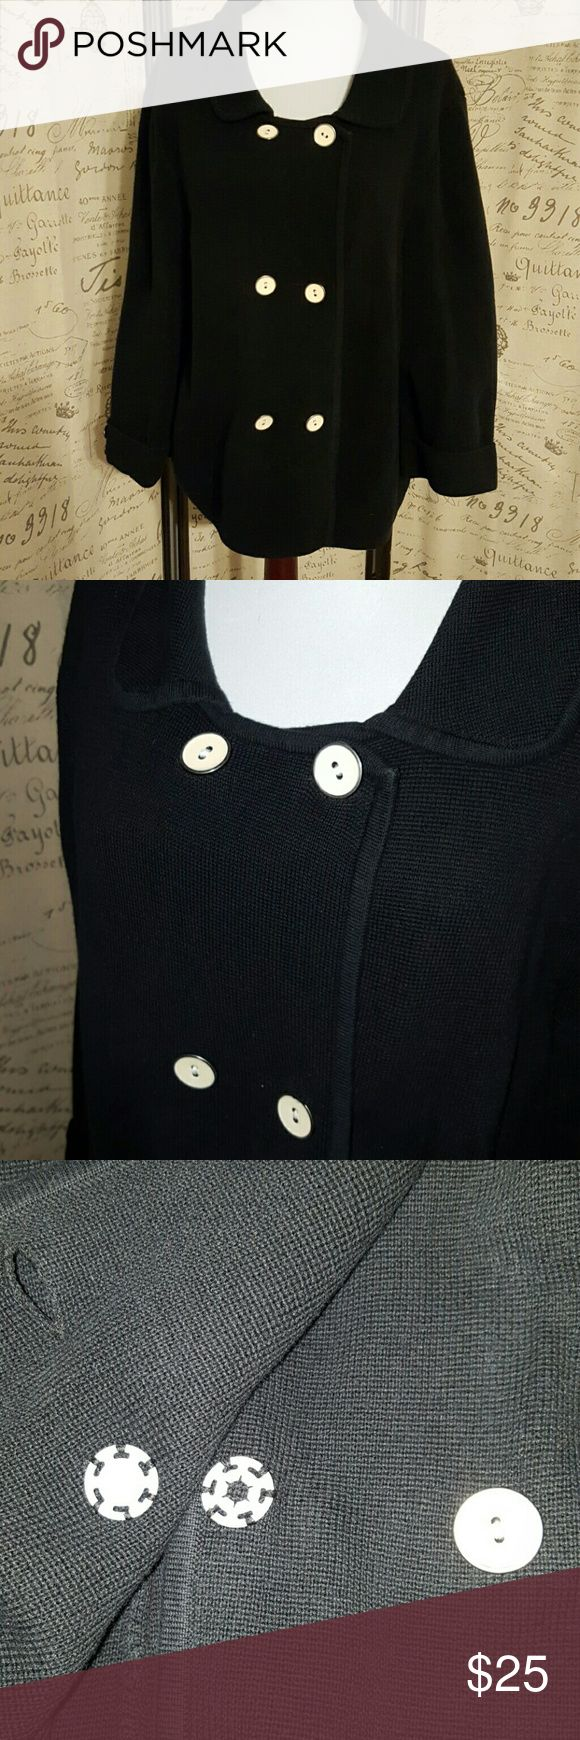 Old Navy Black Pea Coat size XXL Old Navy Black Pea Coat size XXL .100% cotton. Machine washable. Nice thick sweater like peacoat. The bottom inside button and the top inside button snap for extra security as shown in the third picture. Old Navy Jackets & Coats Pea Coats